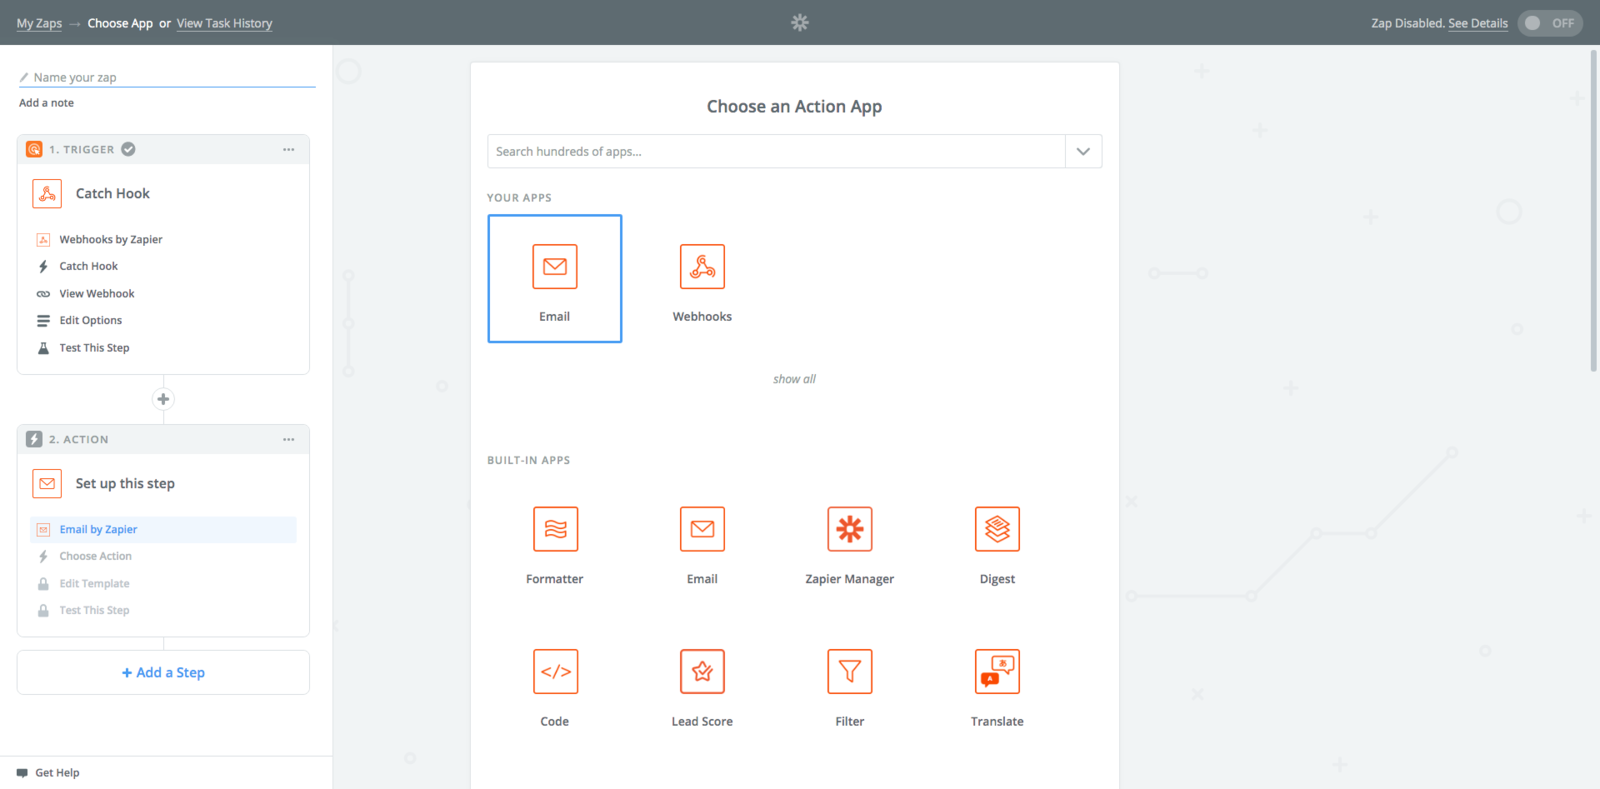 Choose an Action App -> Email by Zapier